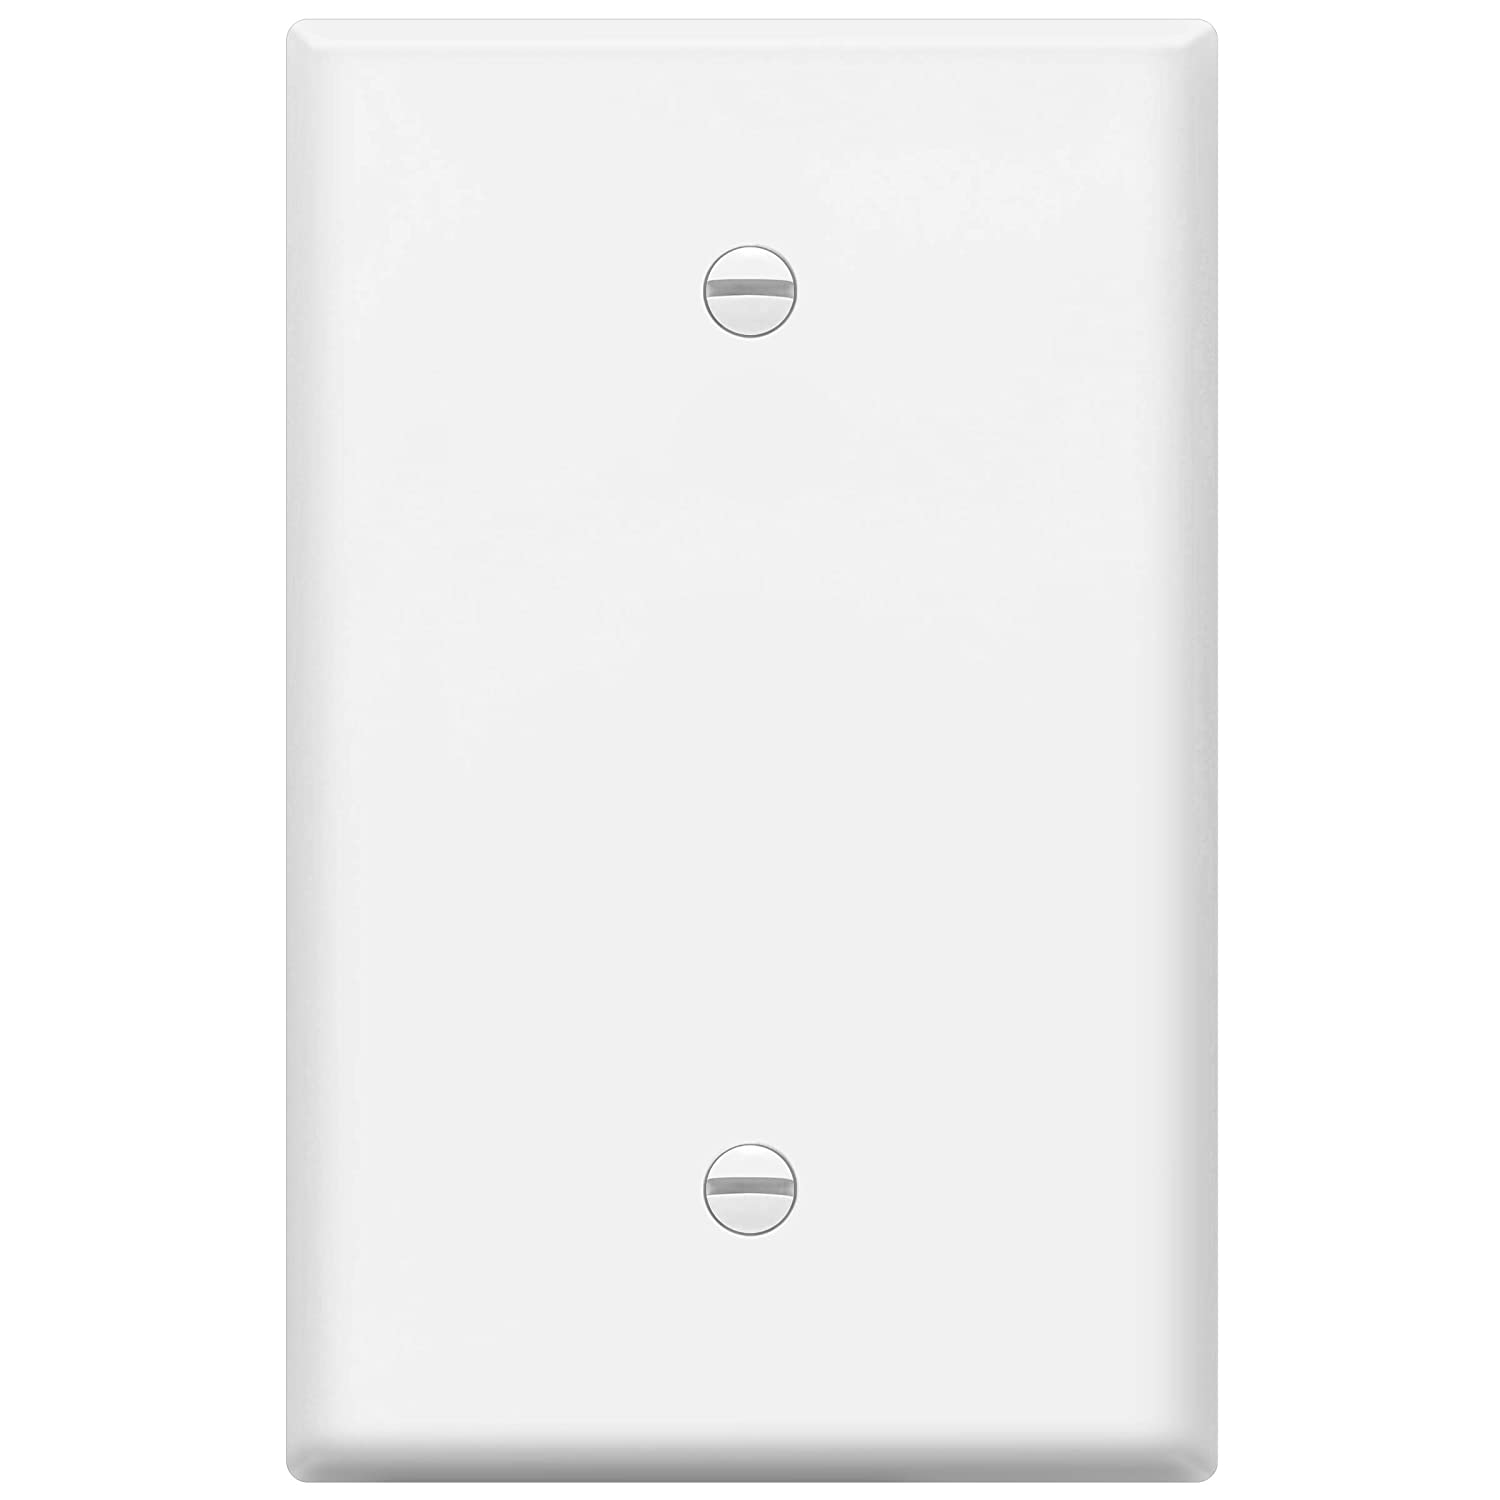 """ENERLITES Blank Device Wall Plate, Over-Size 1-Gang 5.5"""" x 3.5"""", Unbreakable Polycarbonate Thermoplastic, 8801O-W, White"""